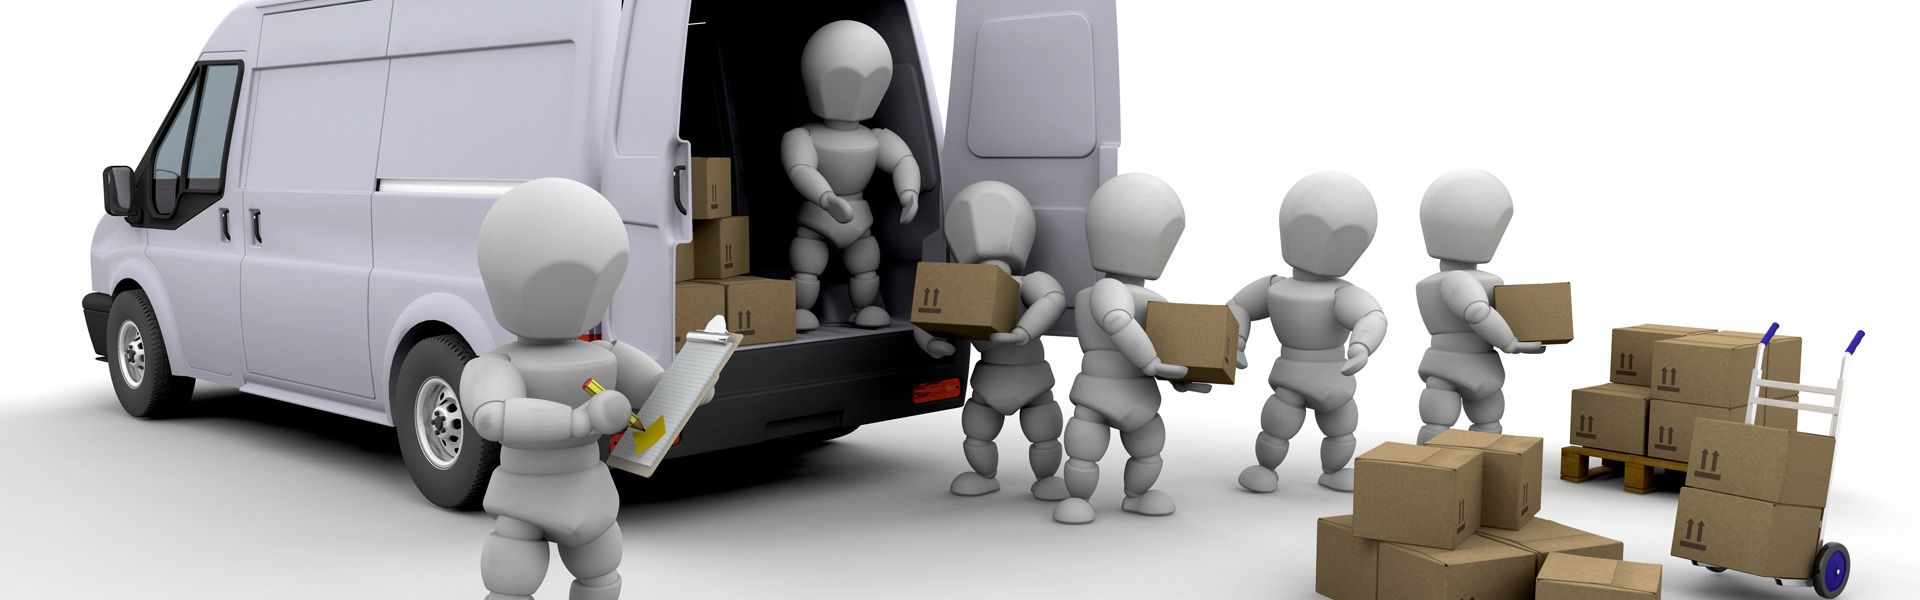 Packing Service Glasgow | Storage Glasgow | WG Removals and Storage